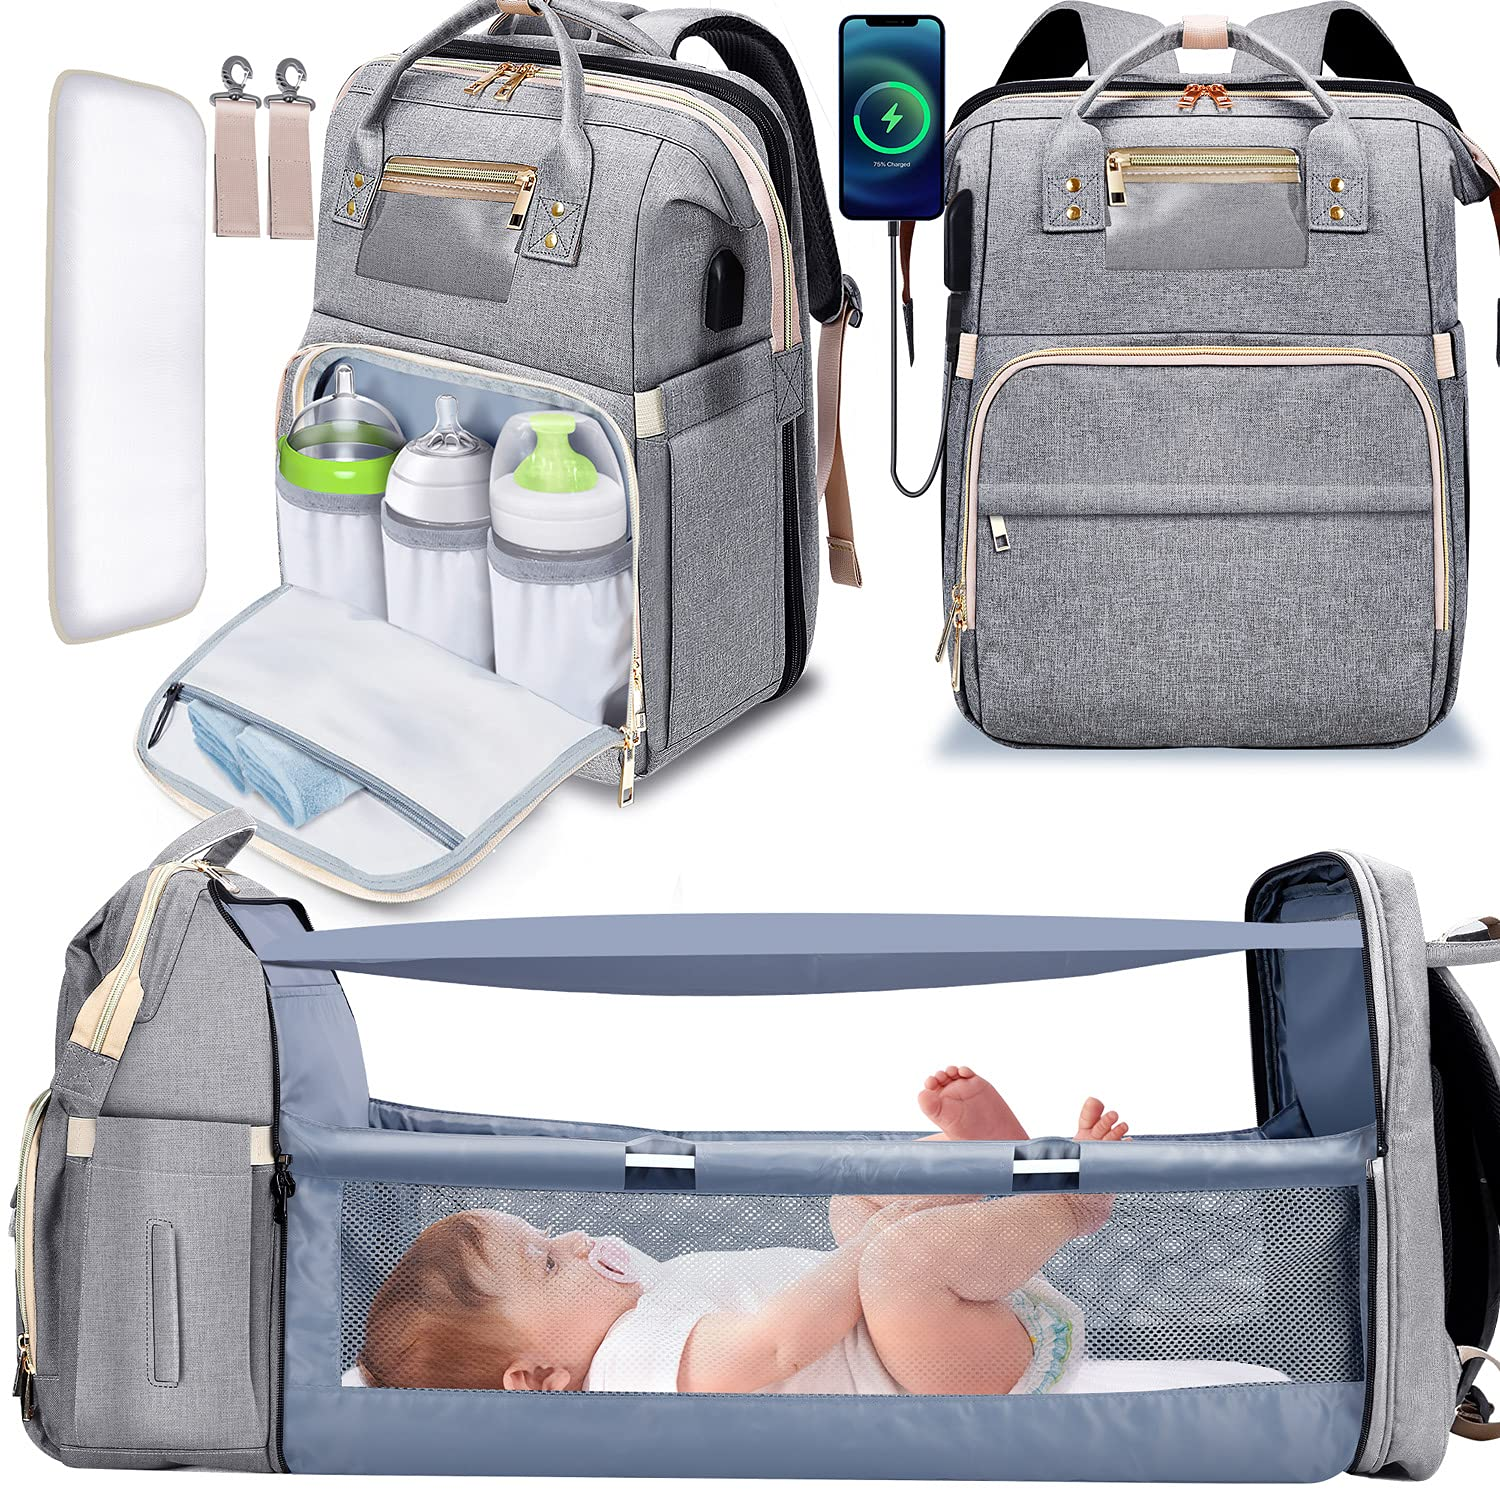 Gimars 6 in 1 Folding Diaper Bag Backpack with Changing Station for Boys Girl, Portable Baby Bags for Travel, Multi-Function, Waterproof Baby Diaper Bag with Insulated Milk Bottle Pocket, Grey